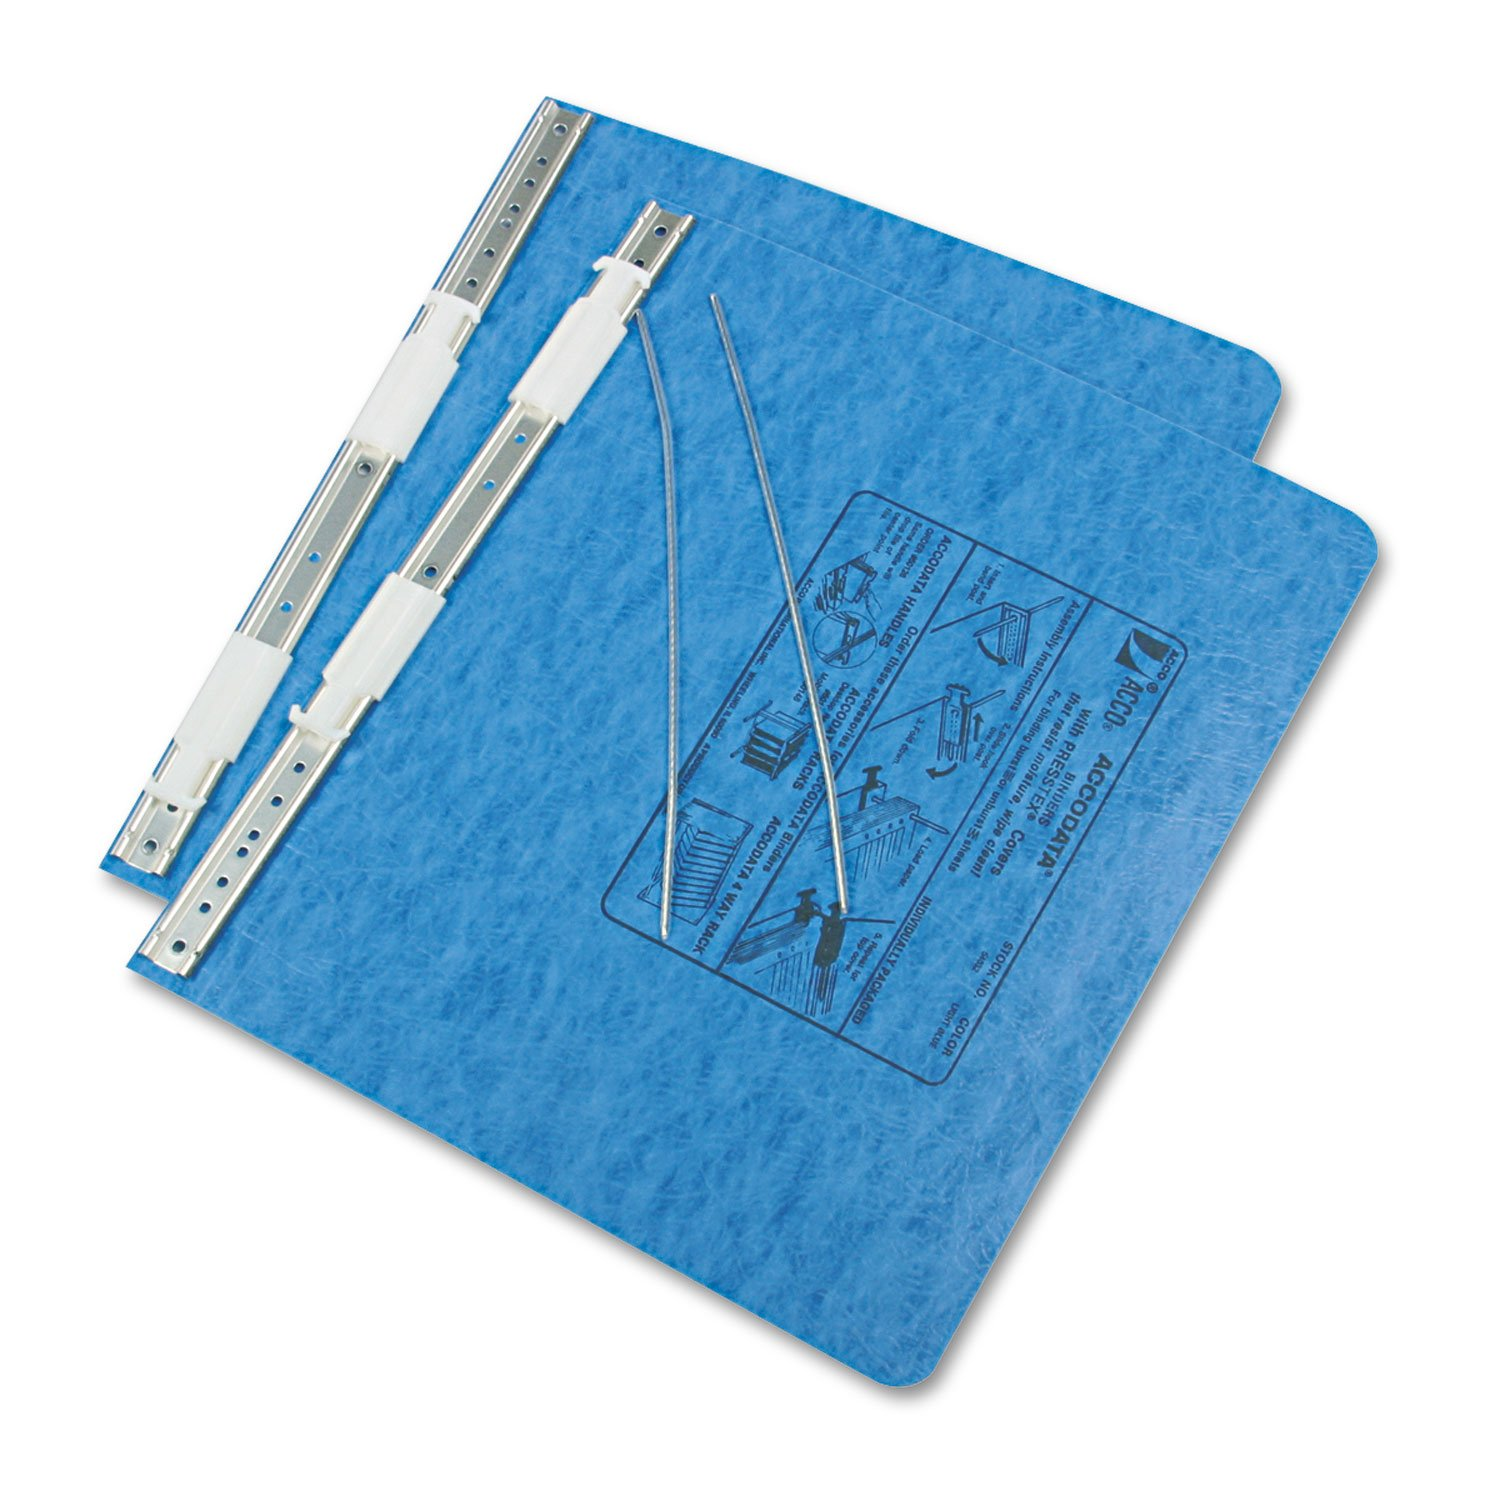 ACCO 54032 Data Processing Binder, 6'' Cap, 11-3/4''x8-1/2'', Light Blue by Office Realm (Image #2)